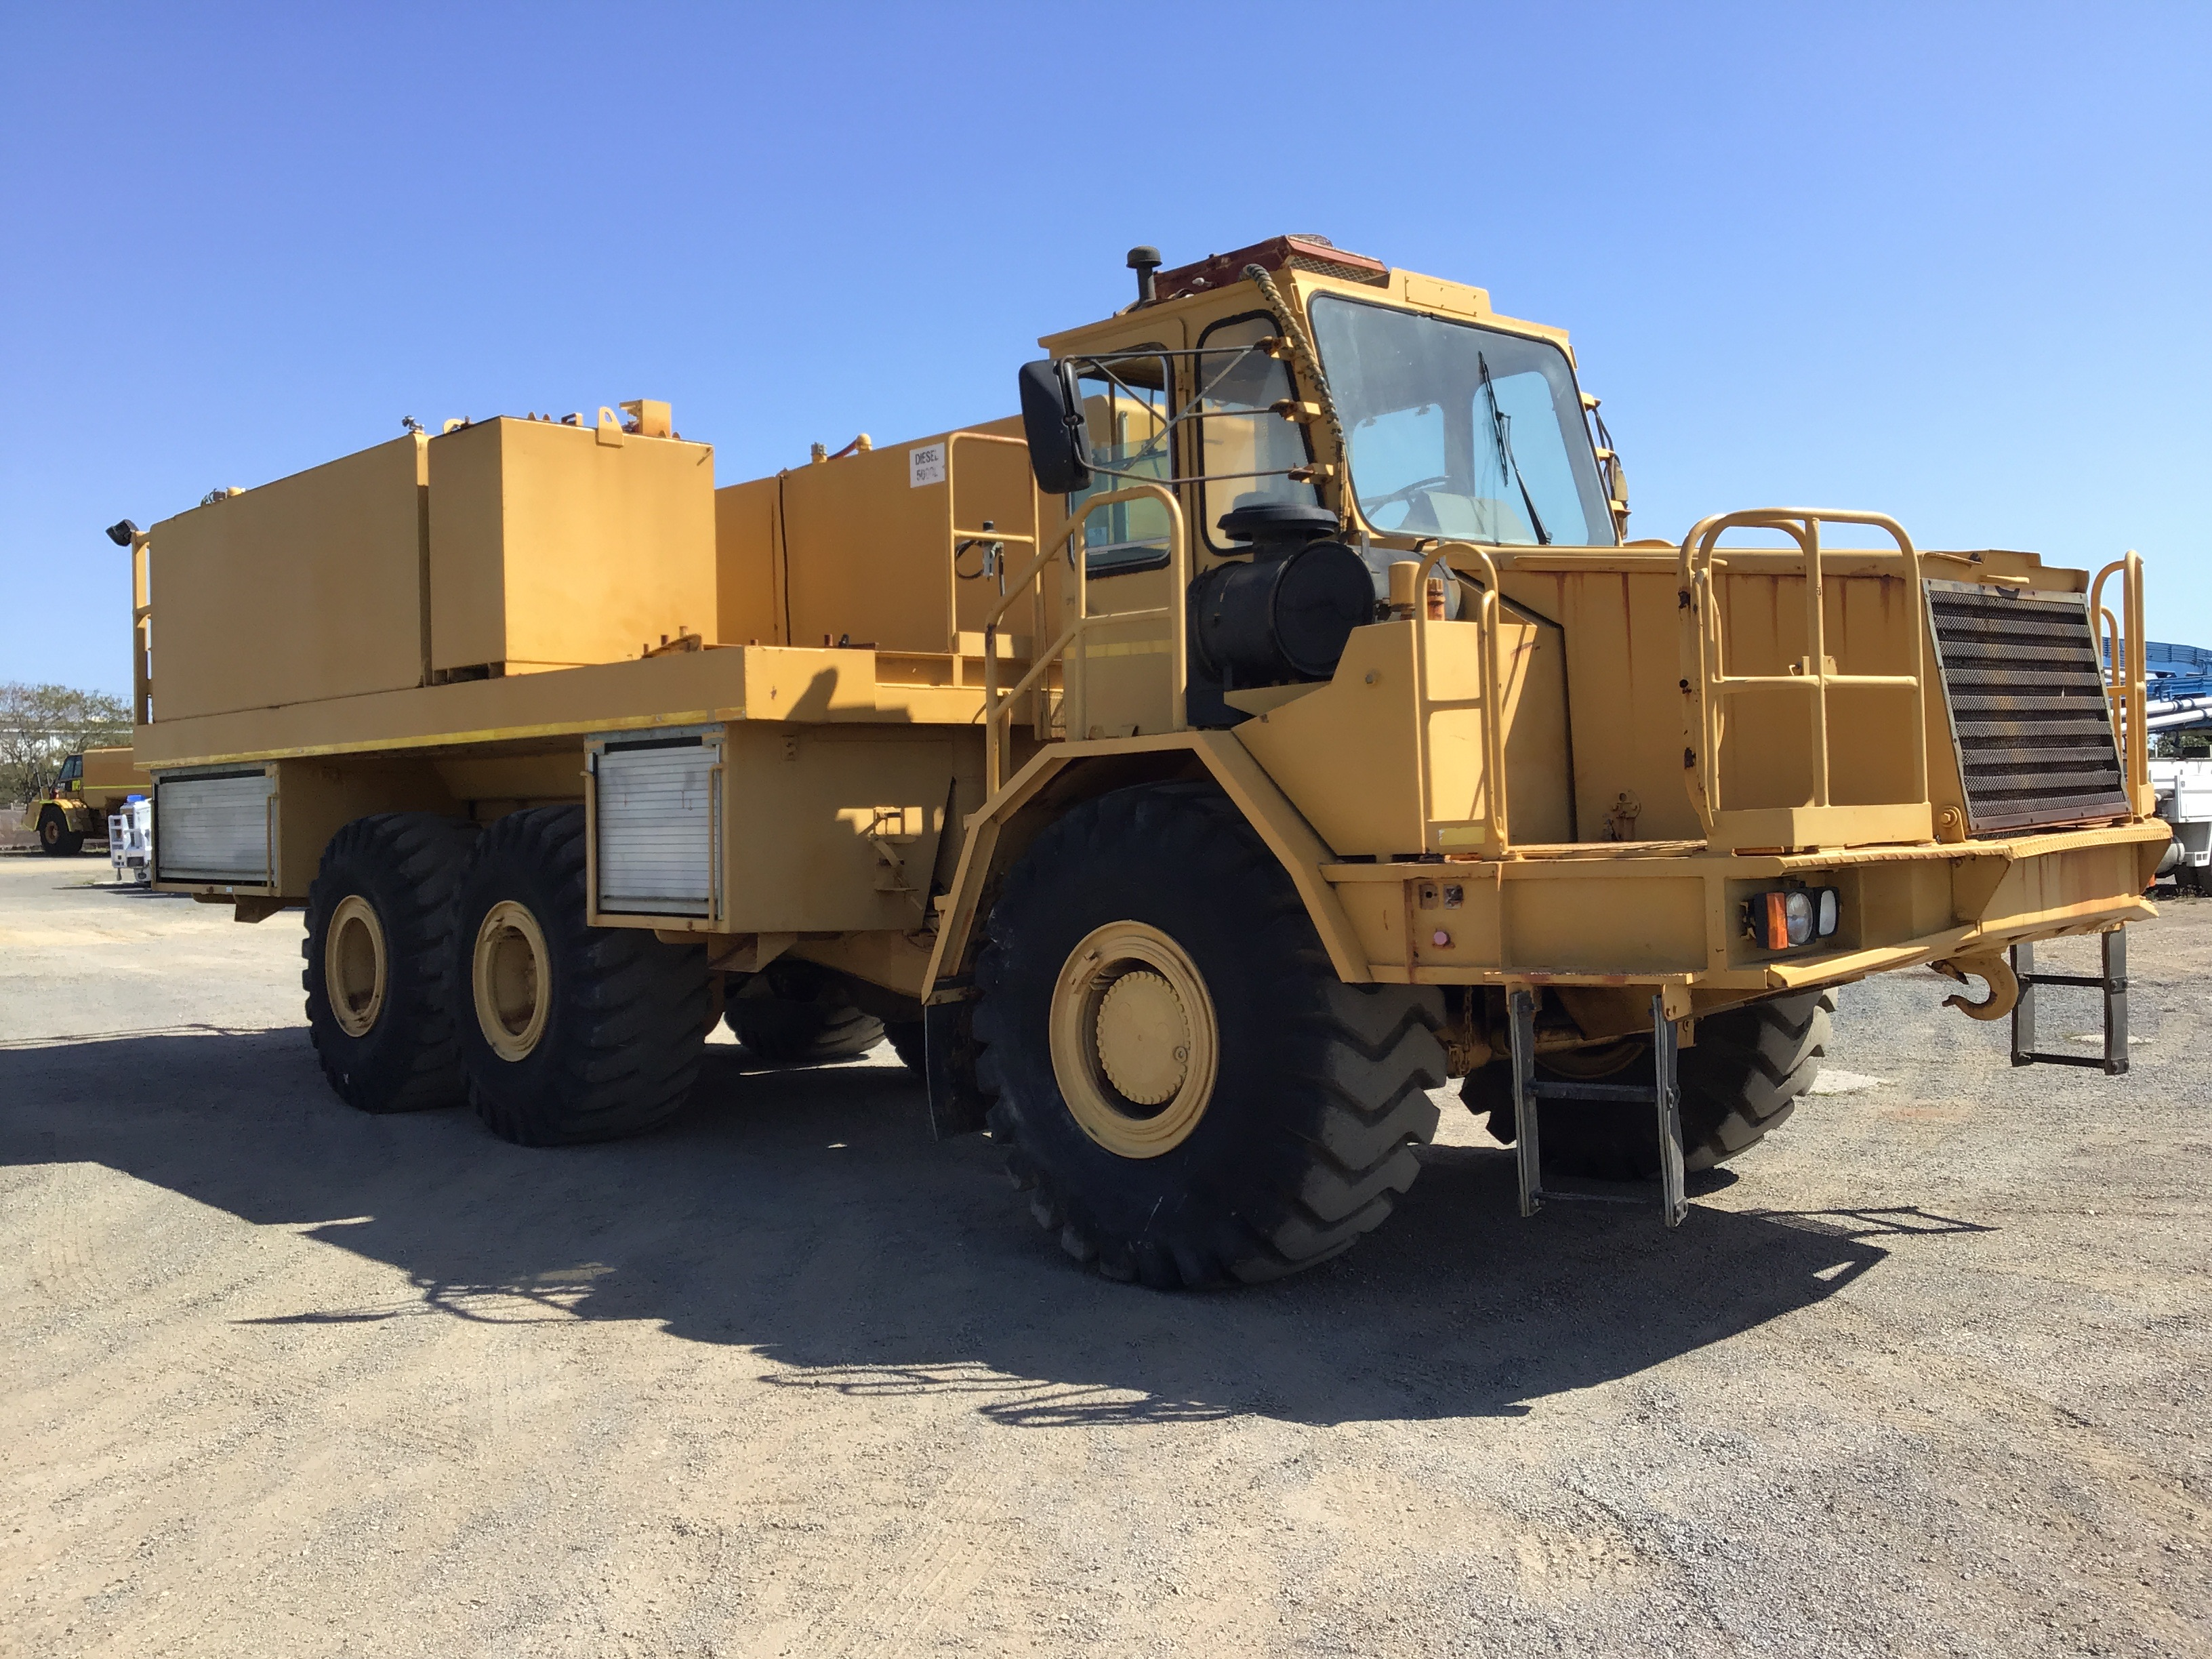 1999 Moxy 7235 Articulated Service Truck